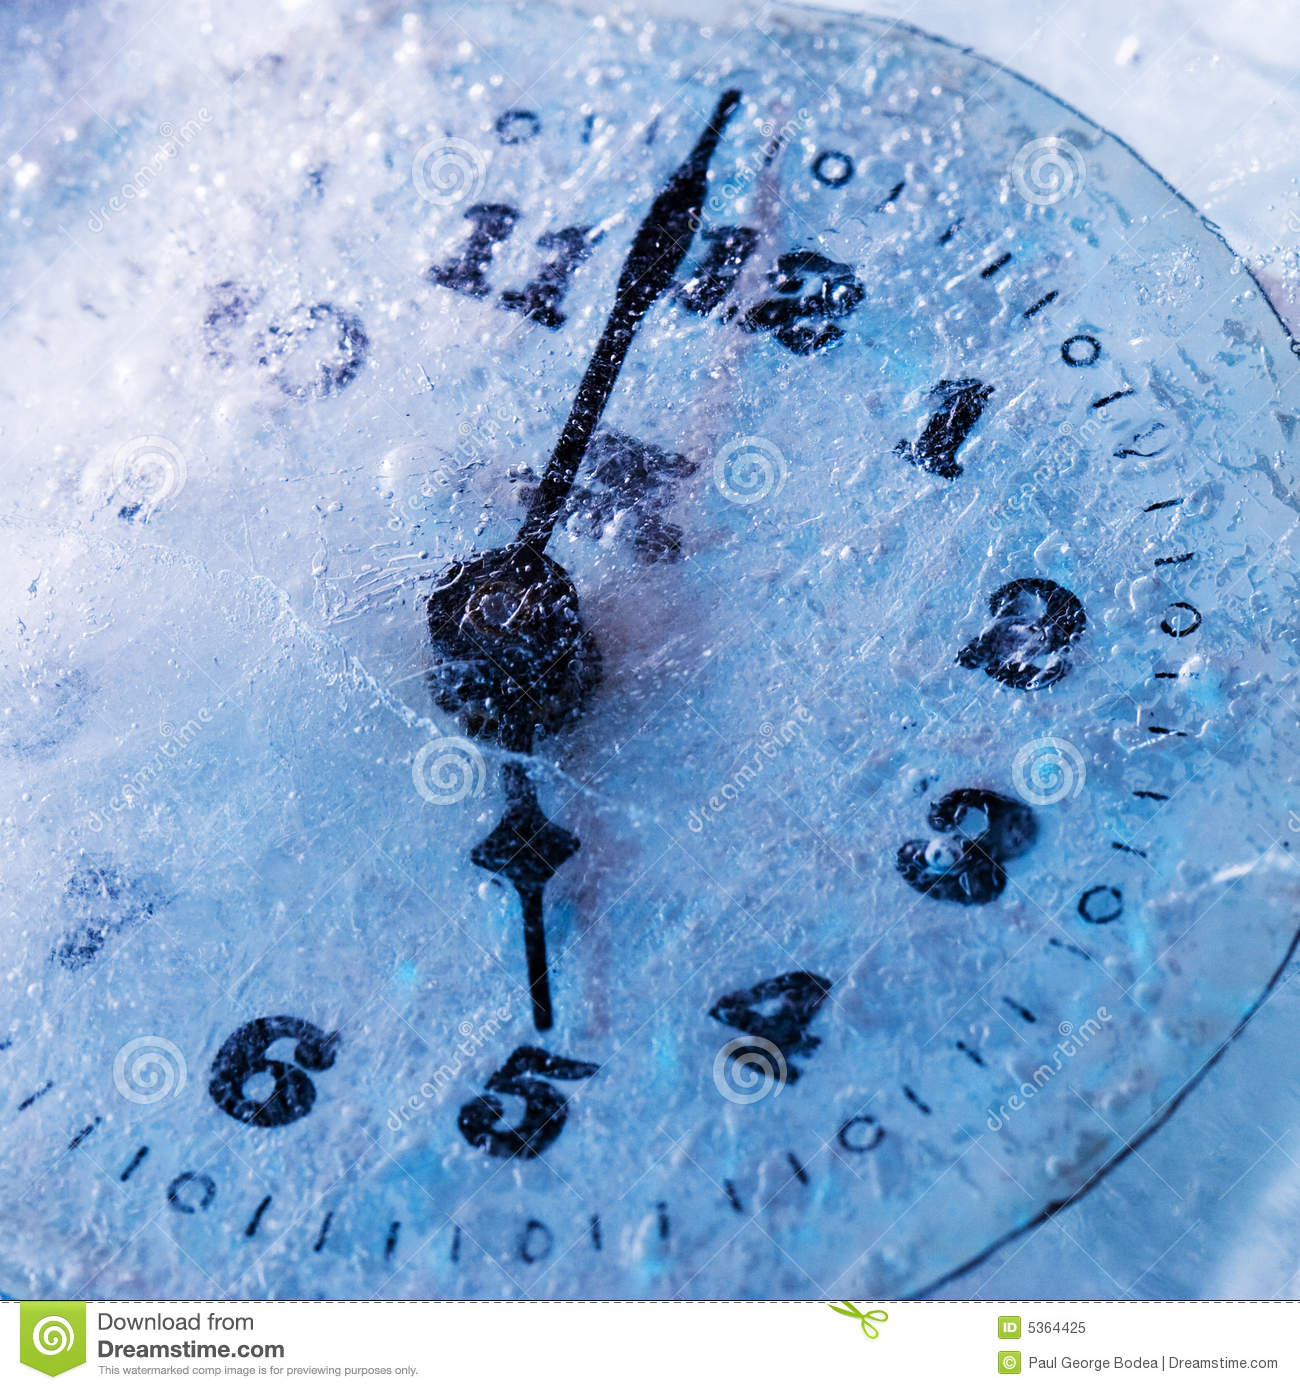 concept image with a clock frozen just two minutes before 5.